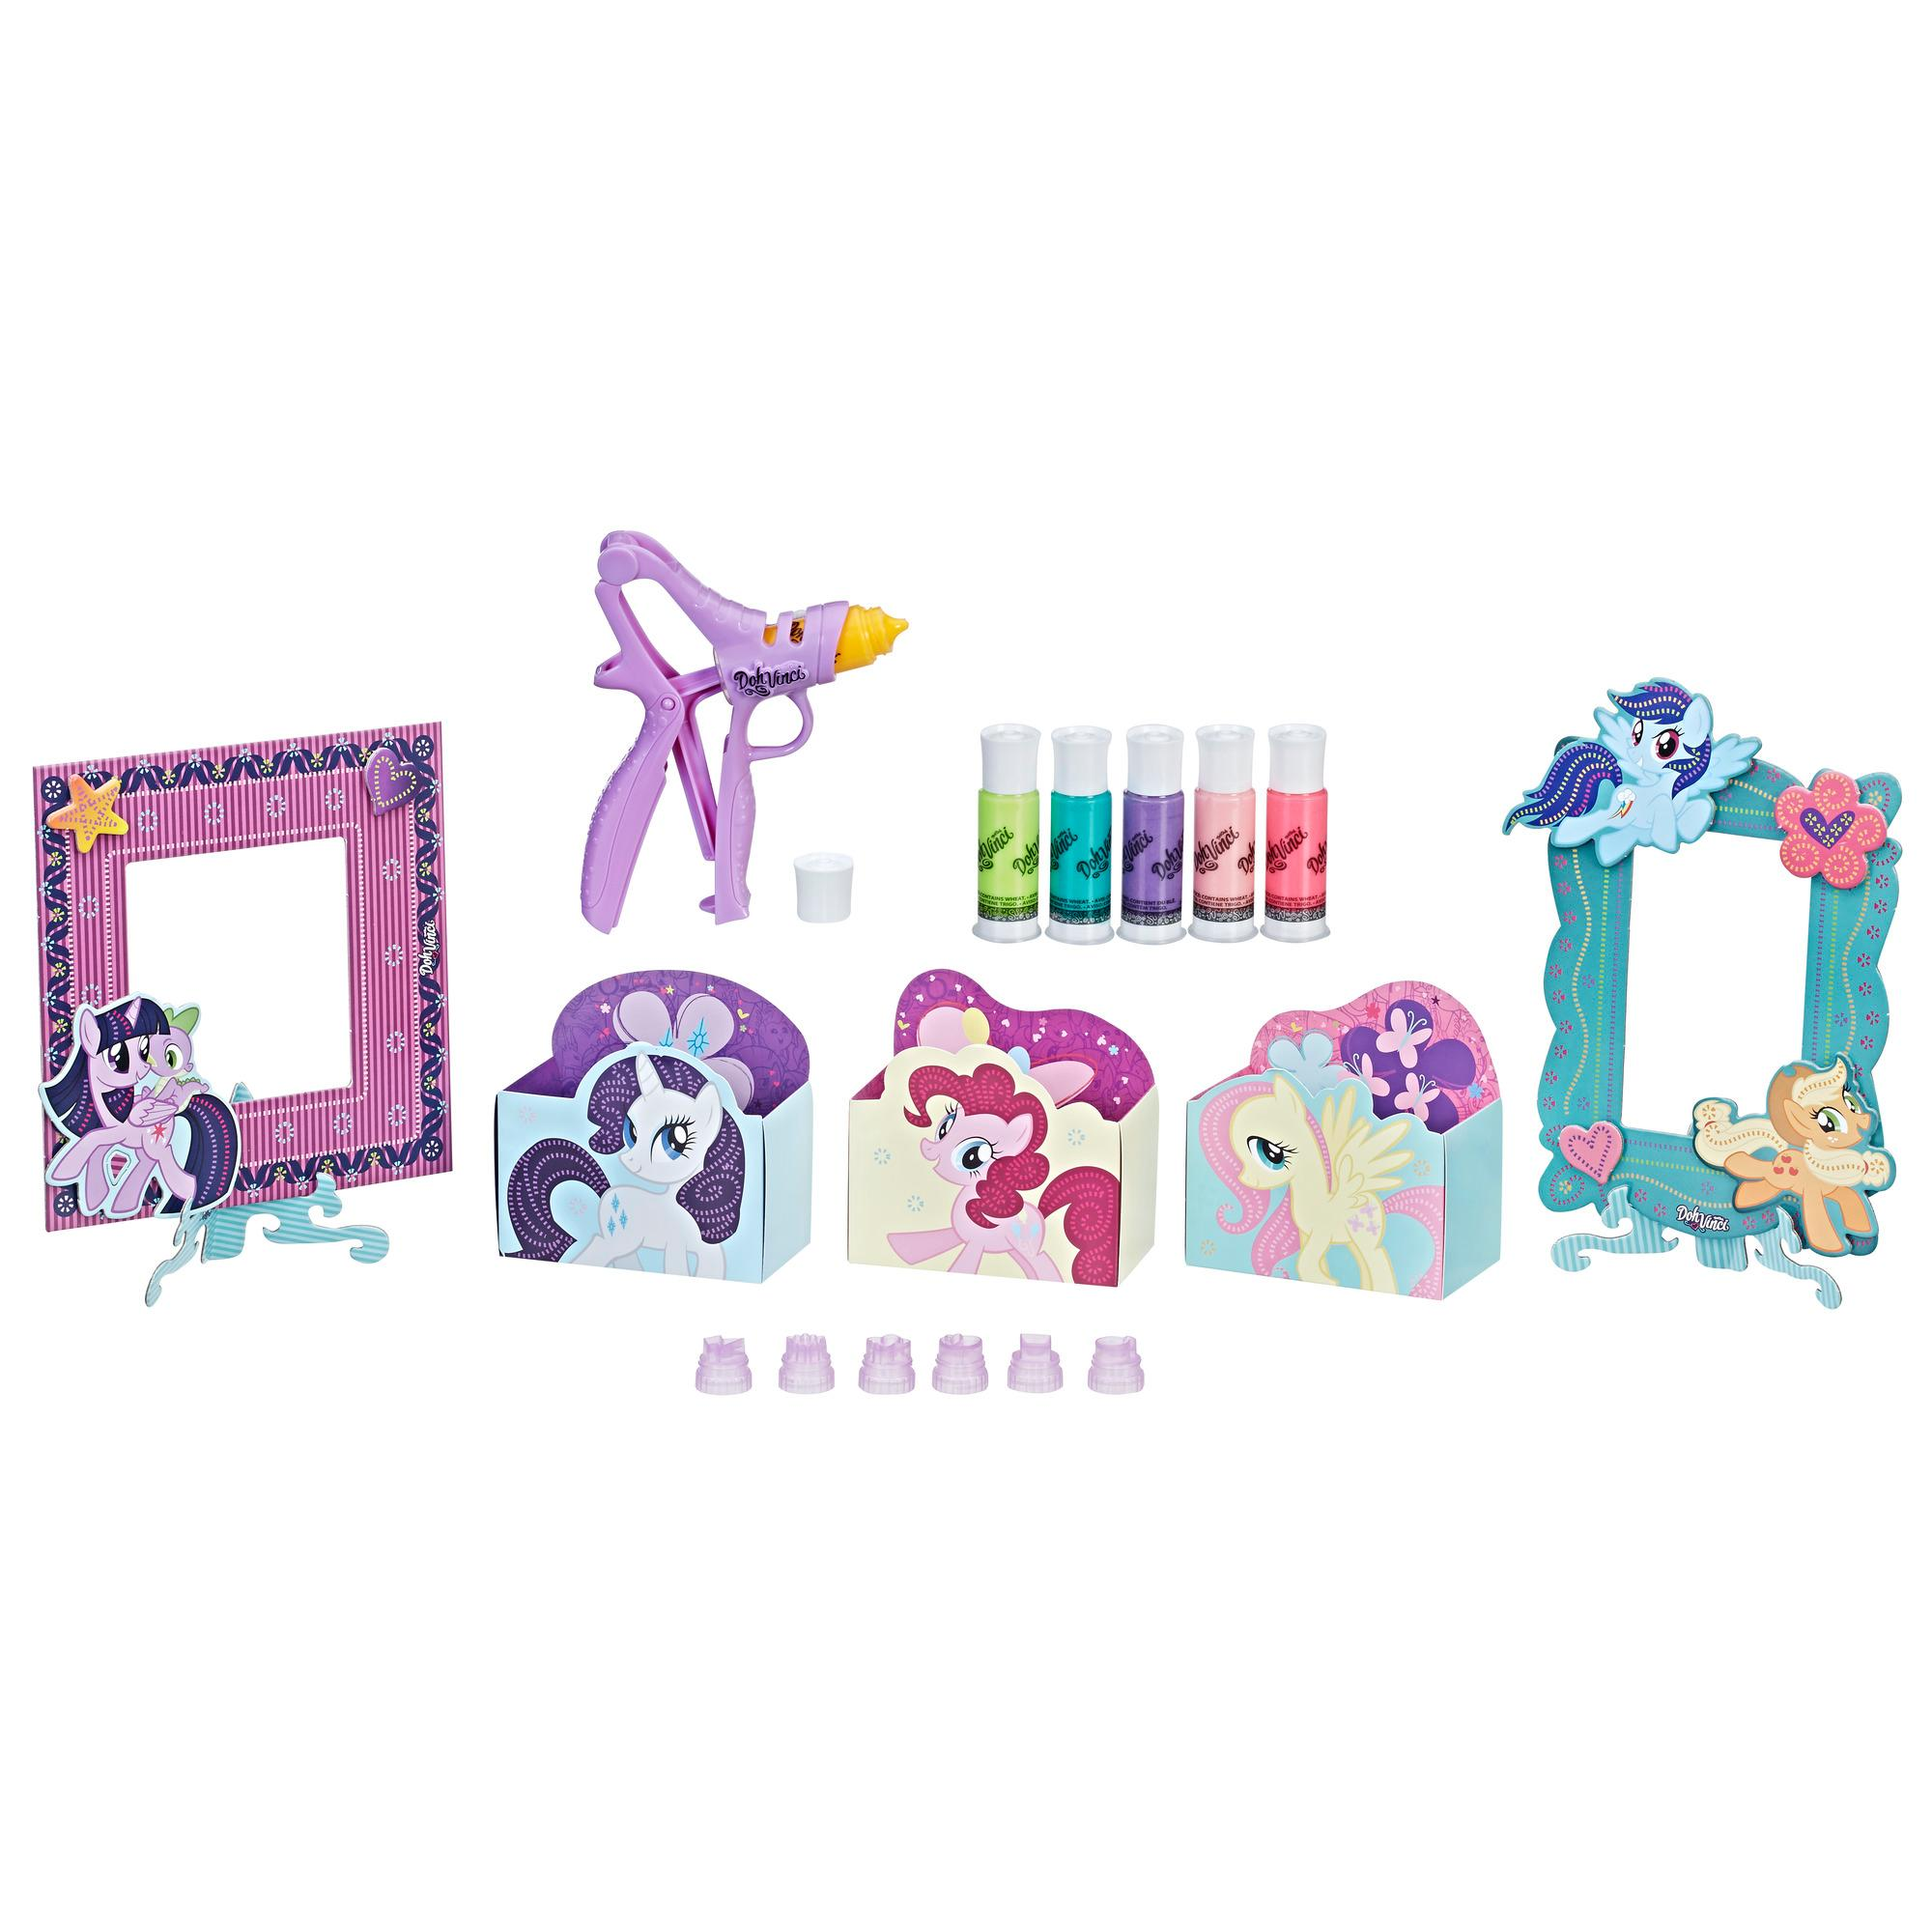 DOH VINCI MY LITTLE PONY TESOROS AMISTAD